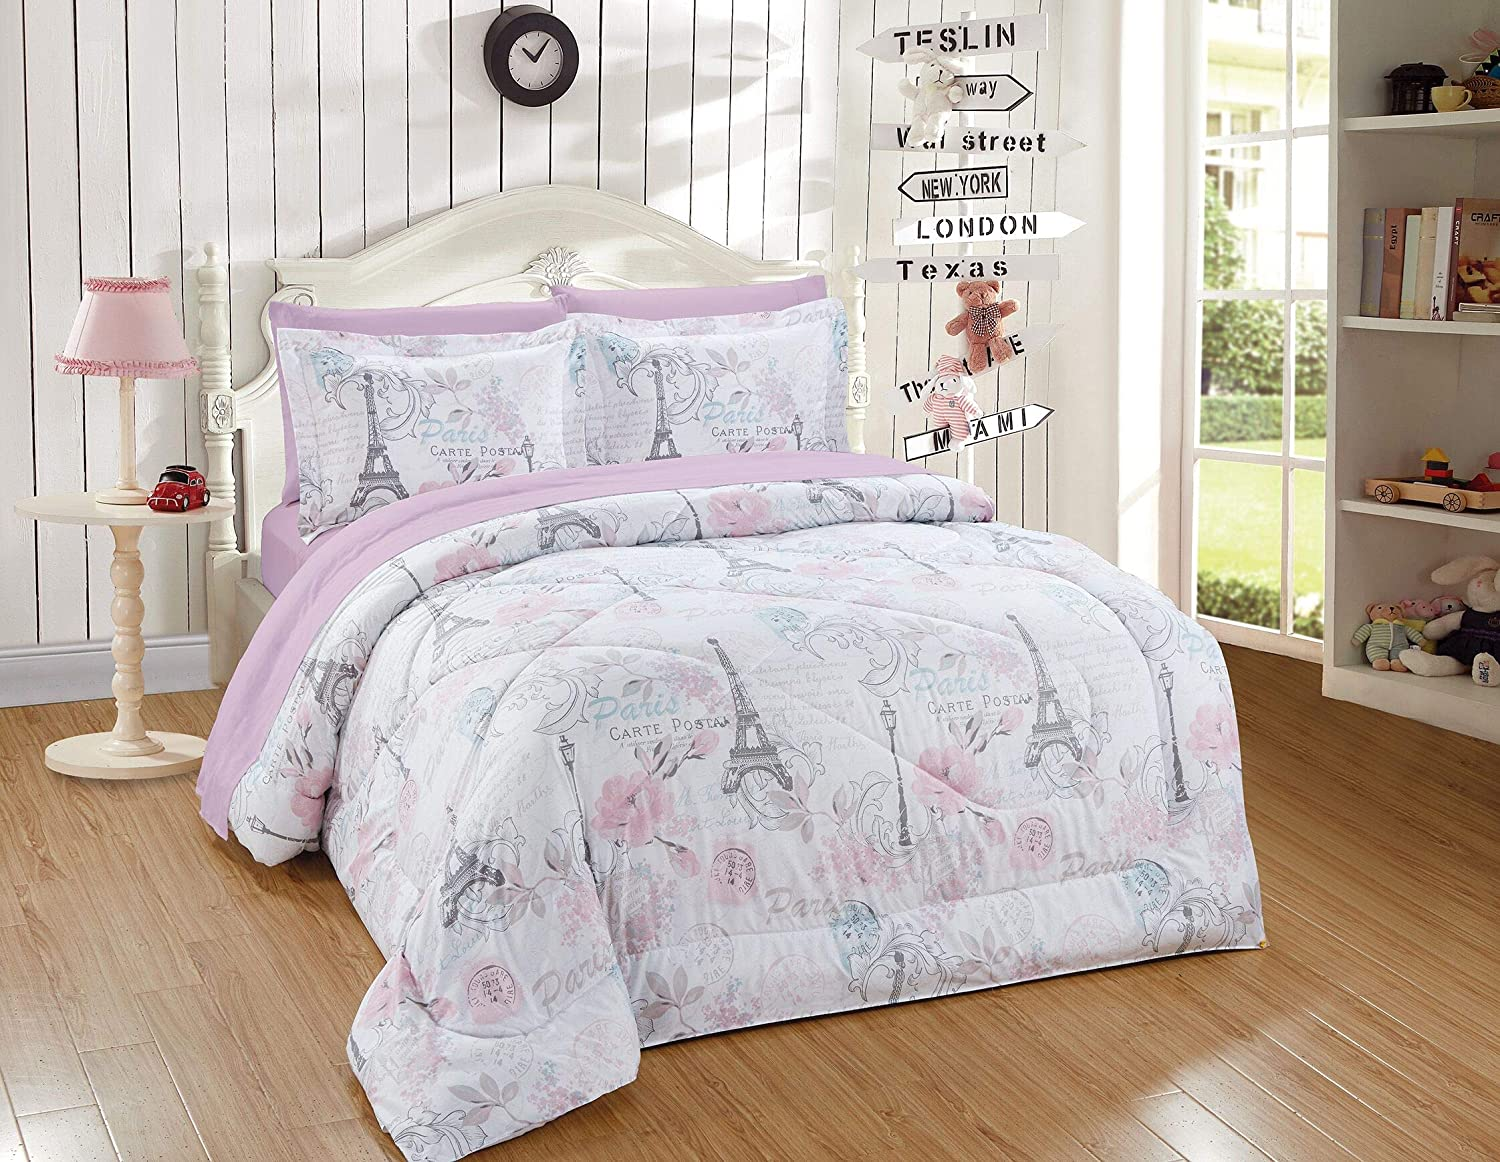 Kids Zone Home Linen 5pc Twin Comforter Set Rose Paris Eiffel Tower Street Light Pink Flower Printed